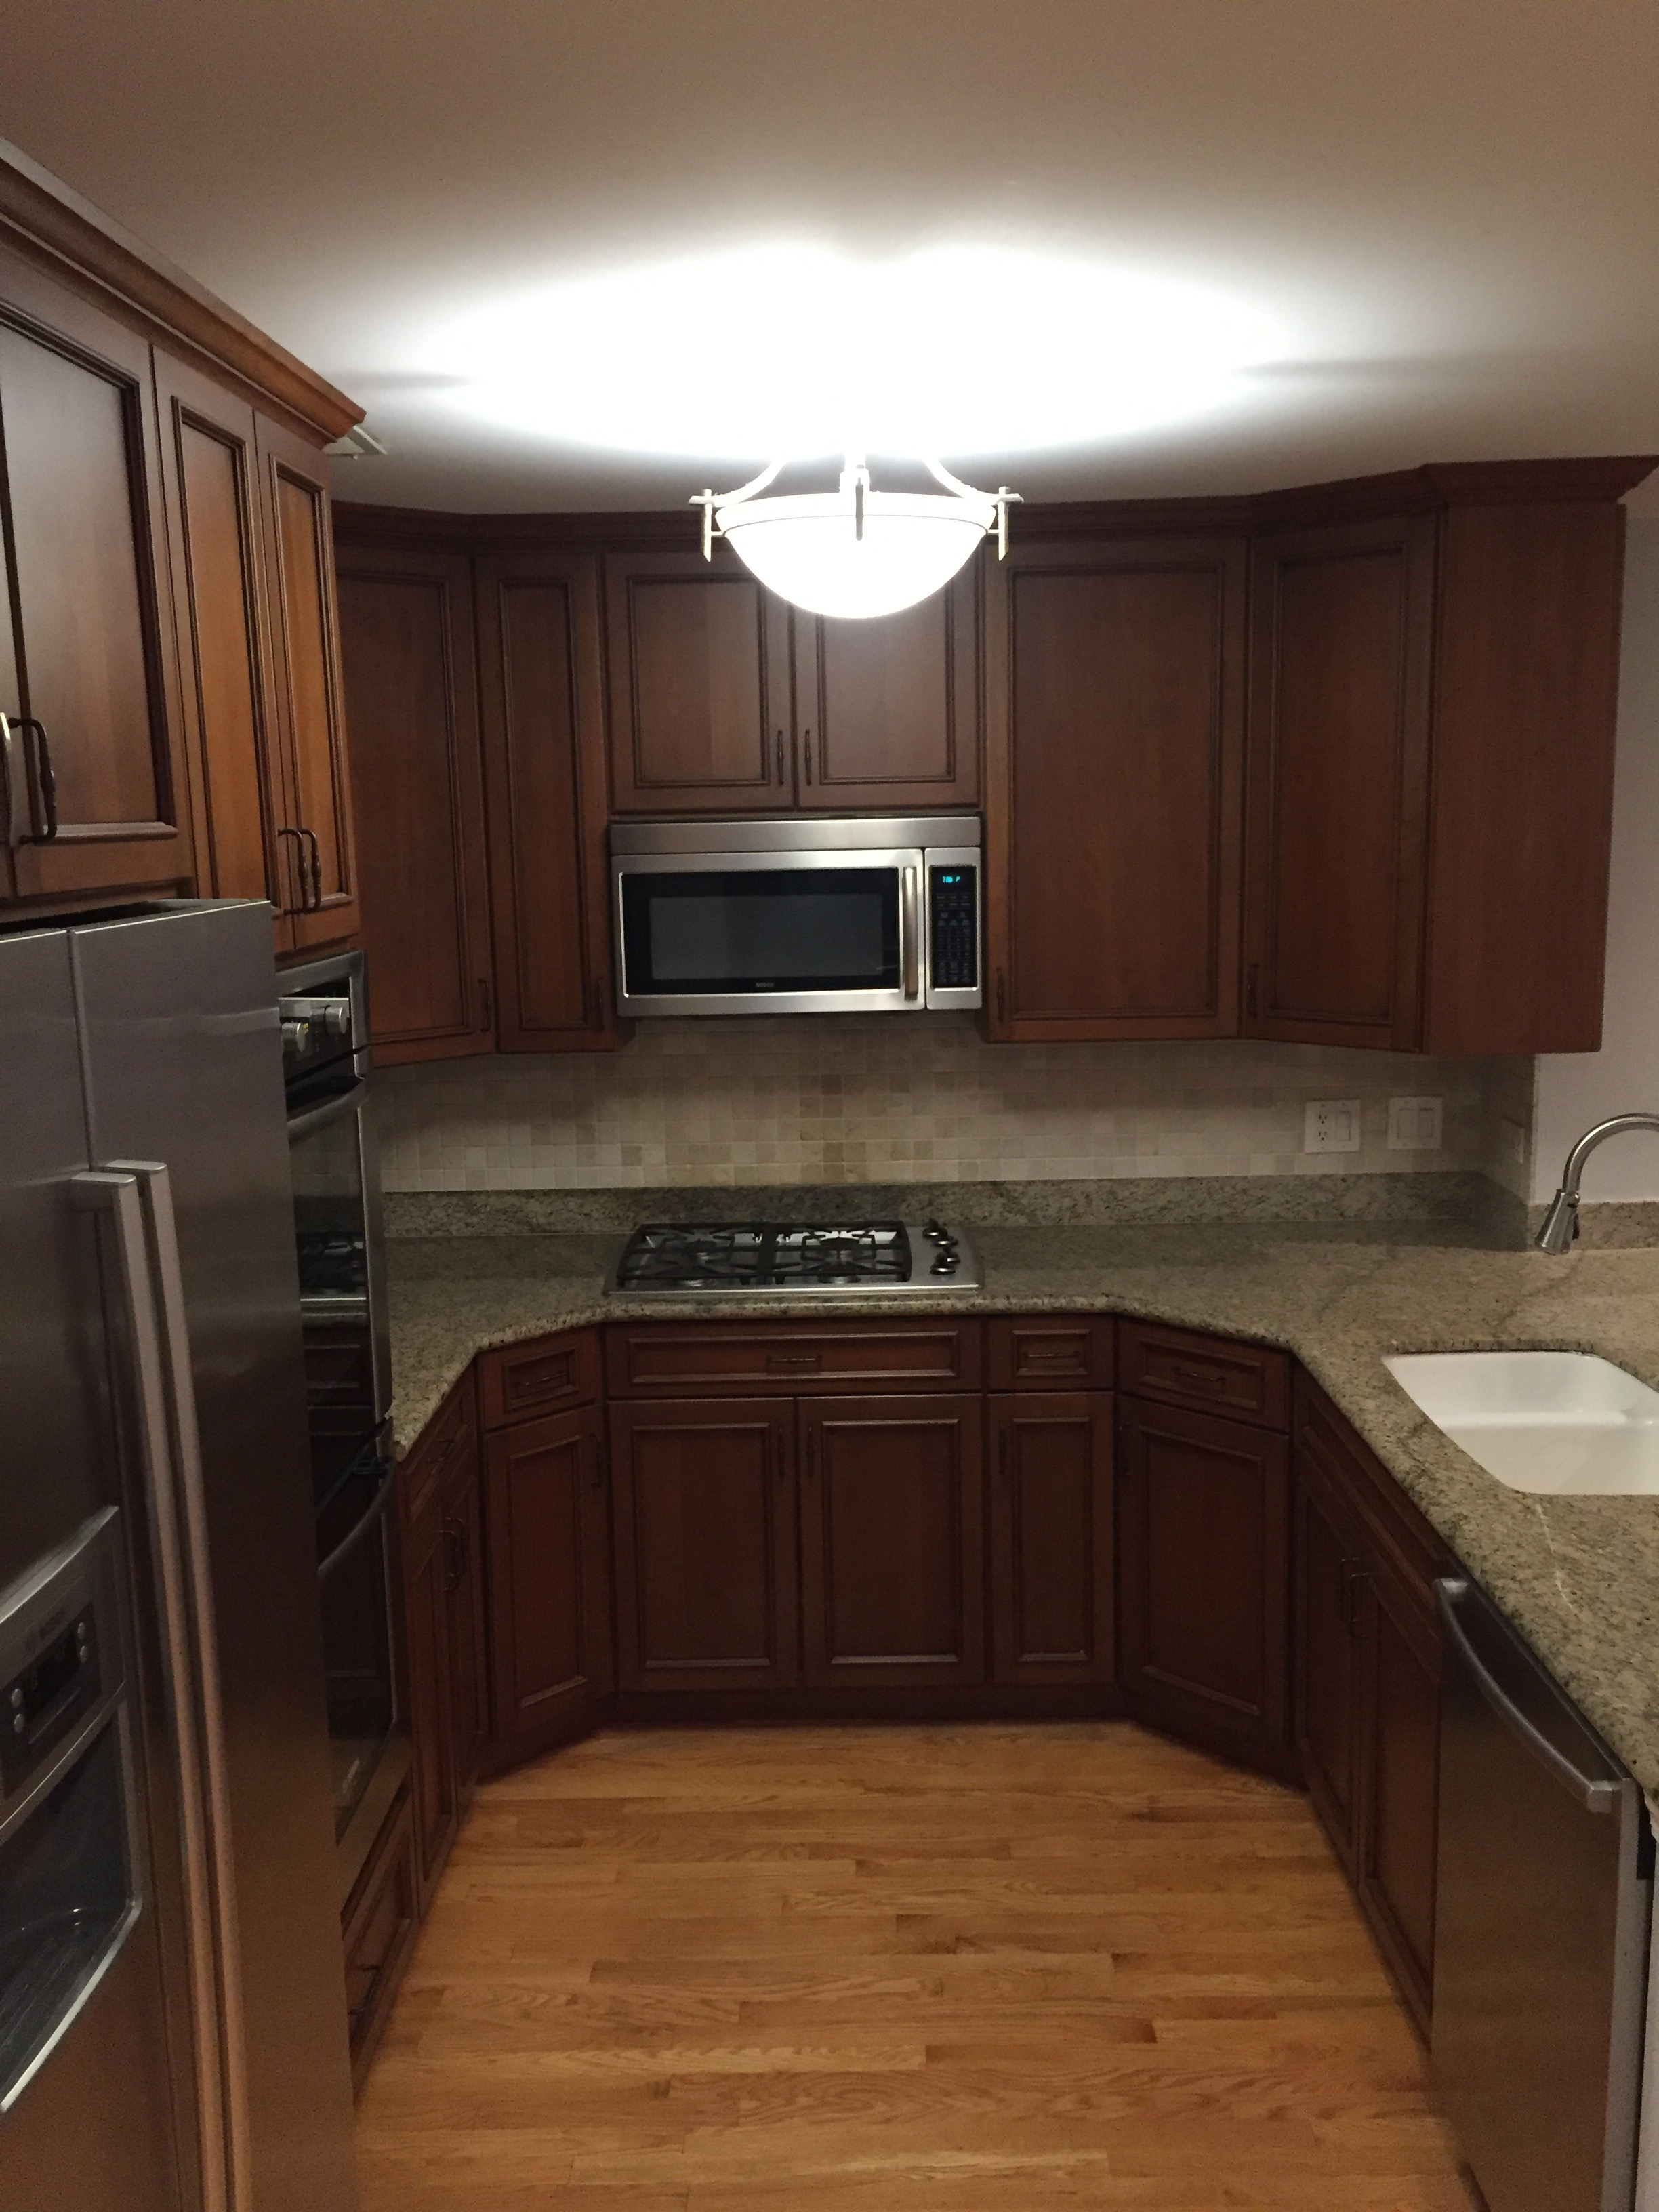 Kitchen Cabinets Chicago. Kitchen Cabinets Refinishing  Chicago Lincoln Park Arlington Heights White giantpainters